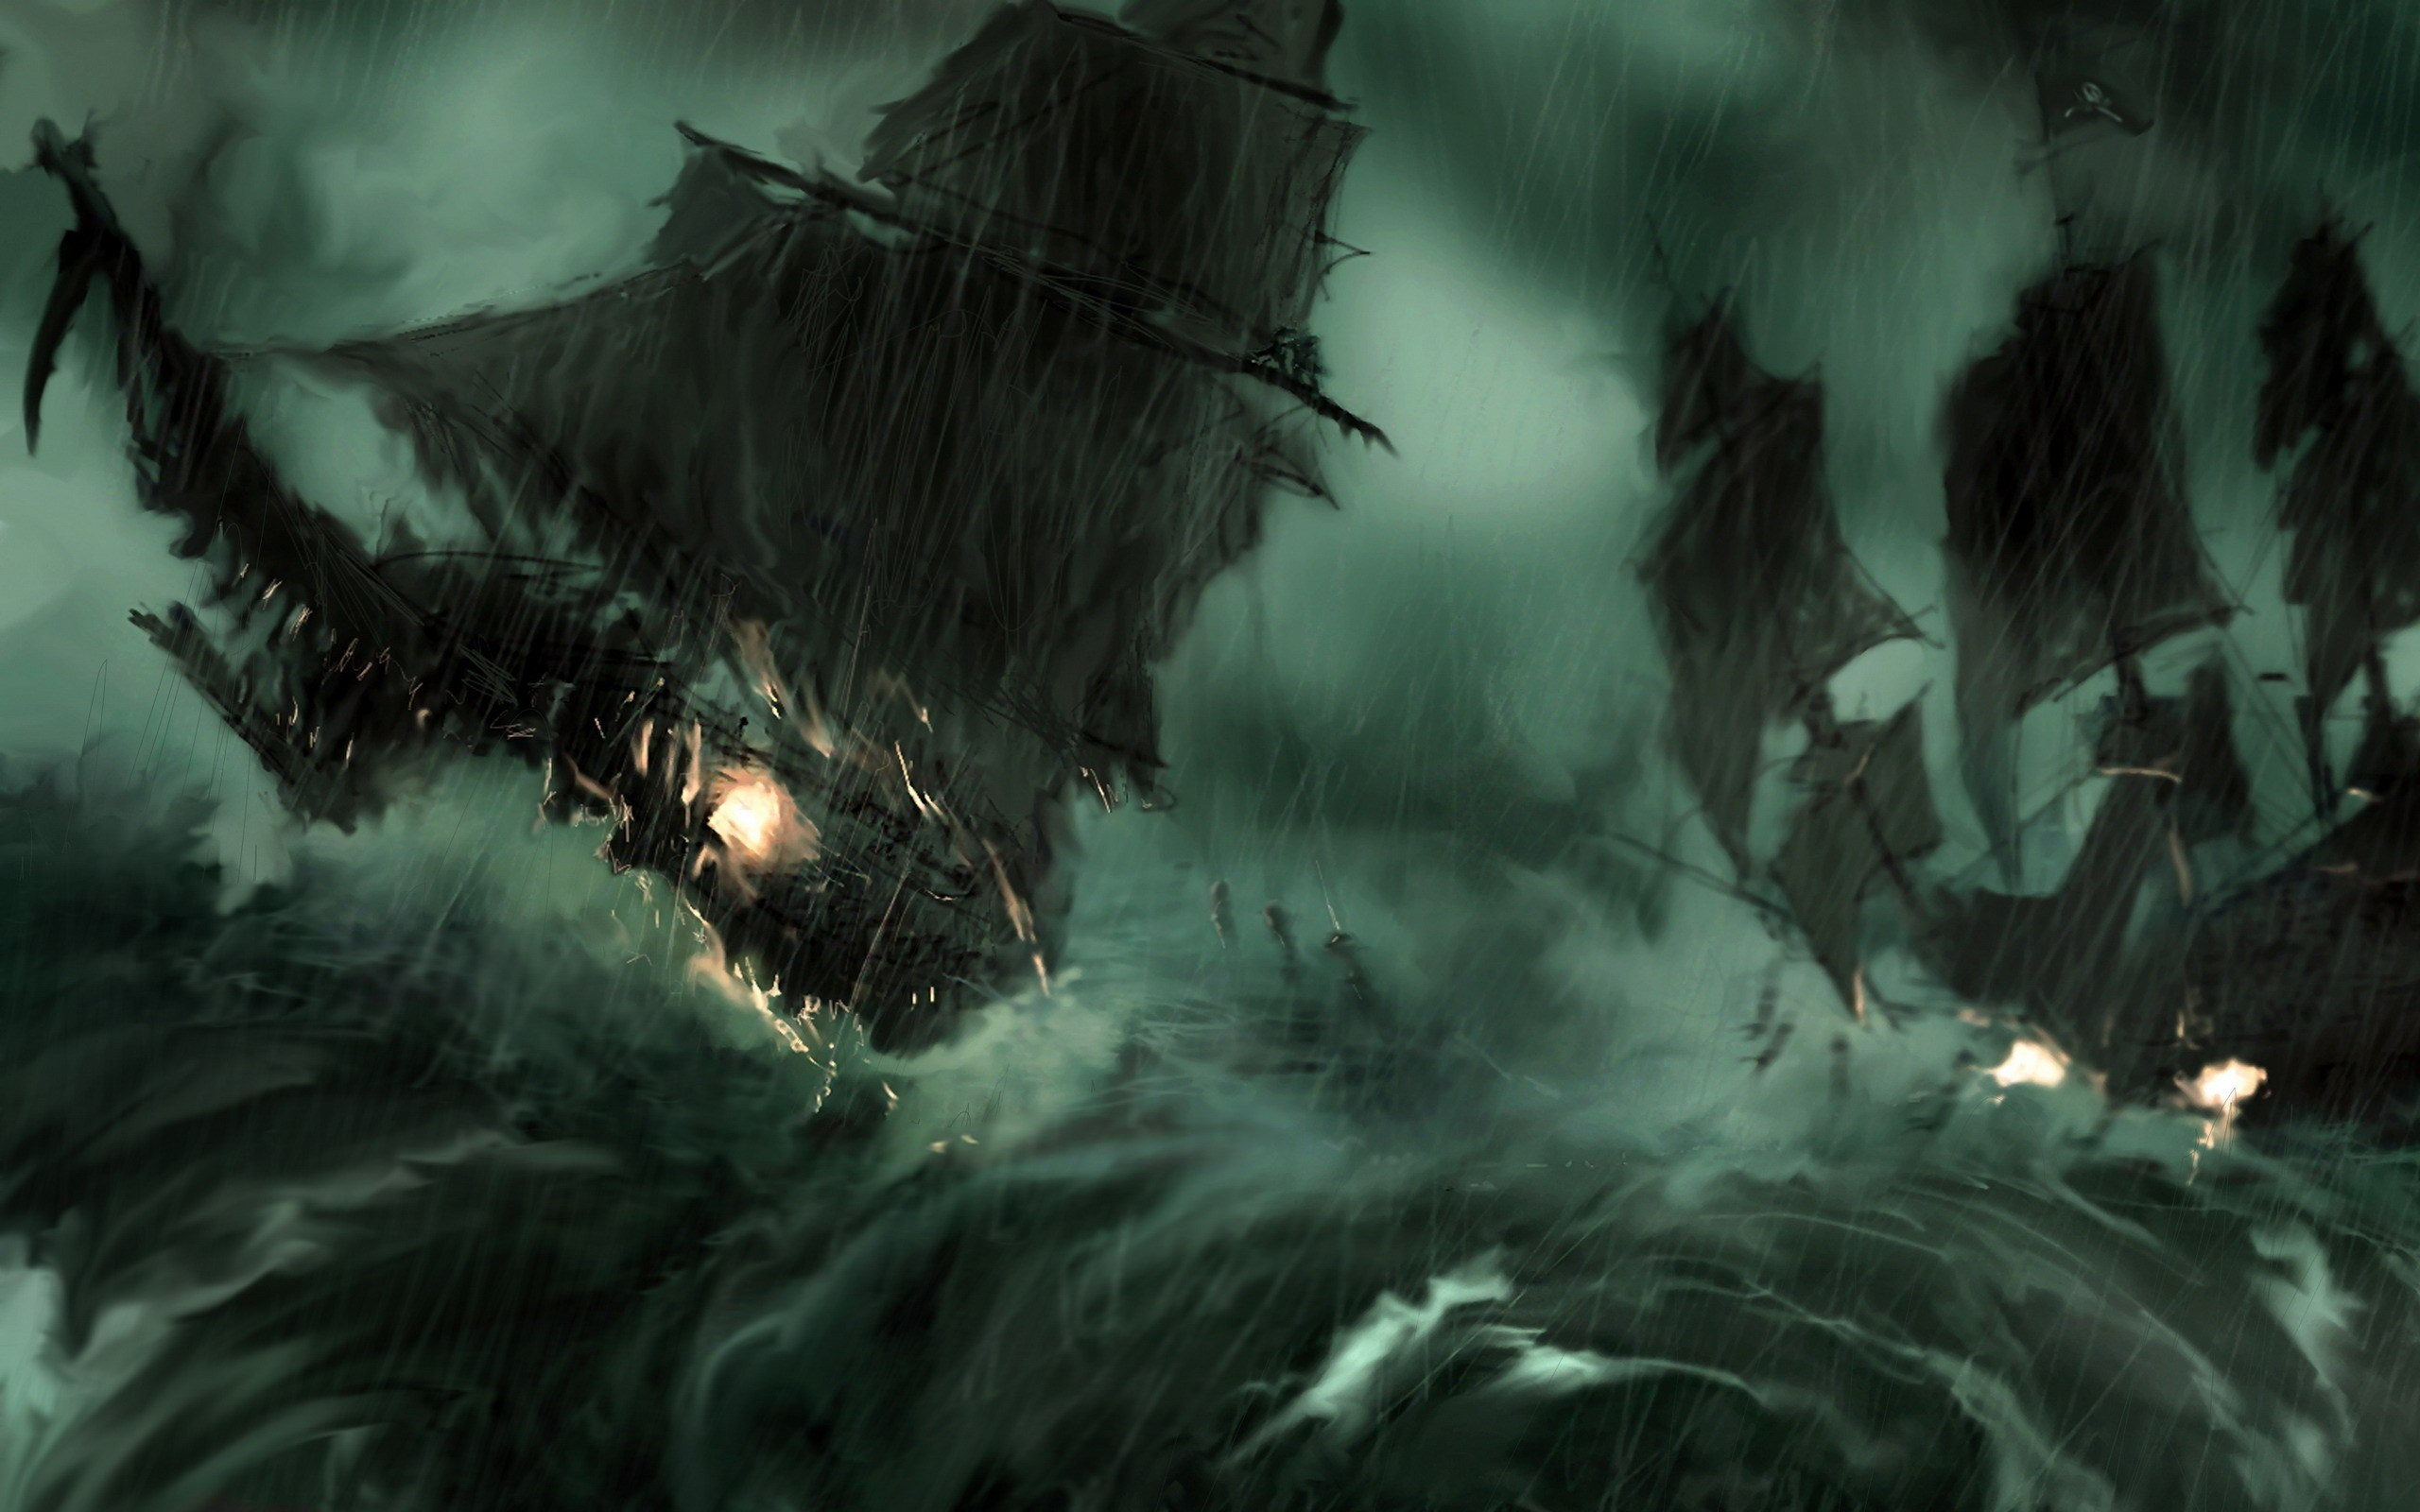 Davy Jones Wallpapers 77 Images - Epic Pirates Of The Caribbean , HD Wallpaper & Backgrounds